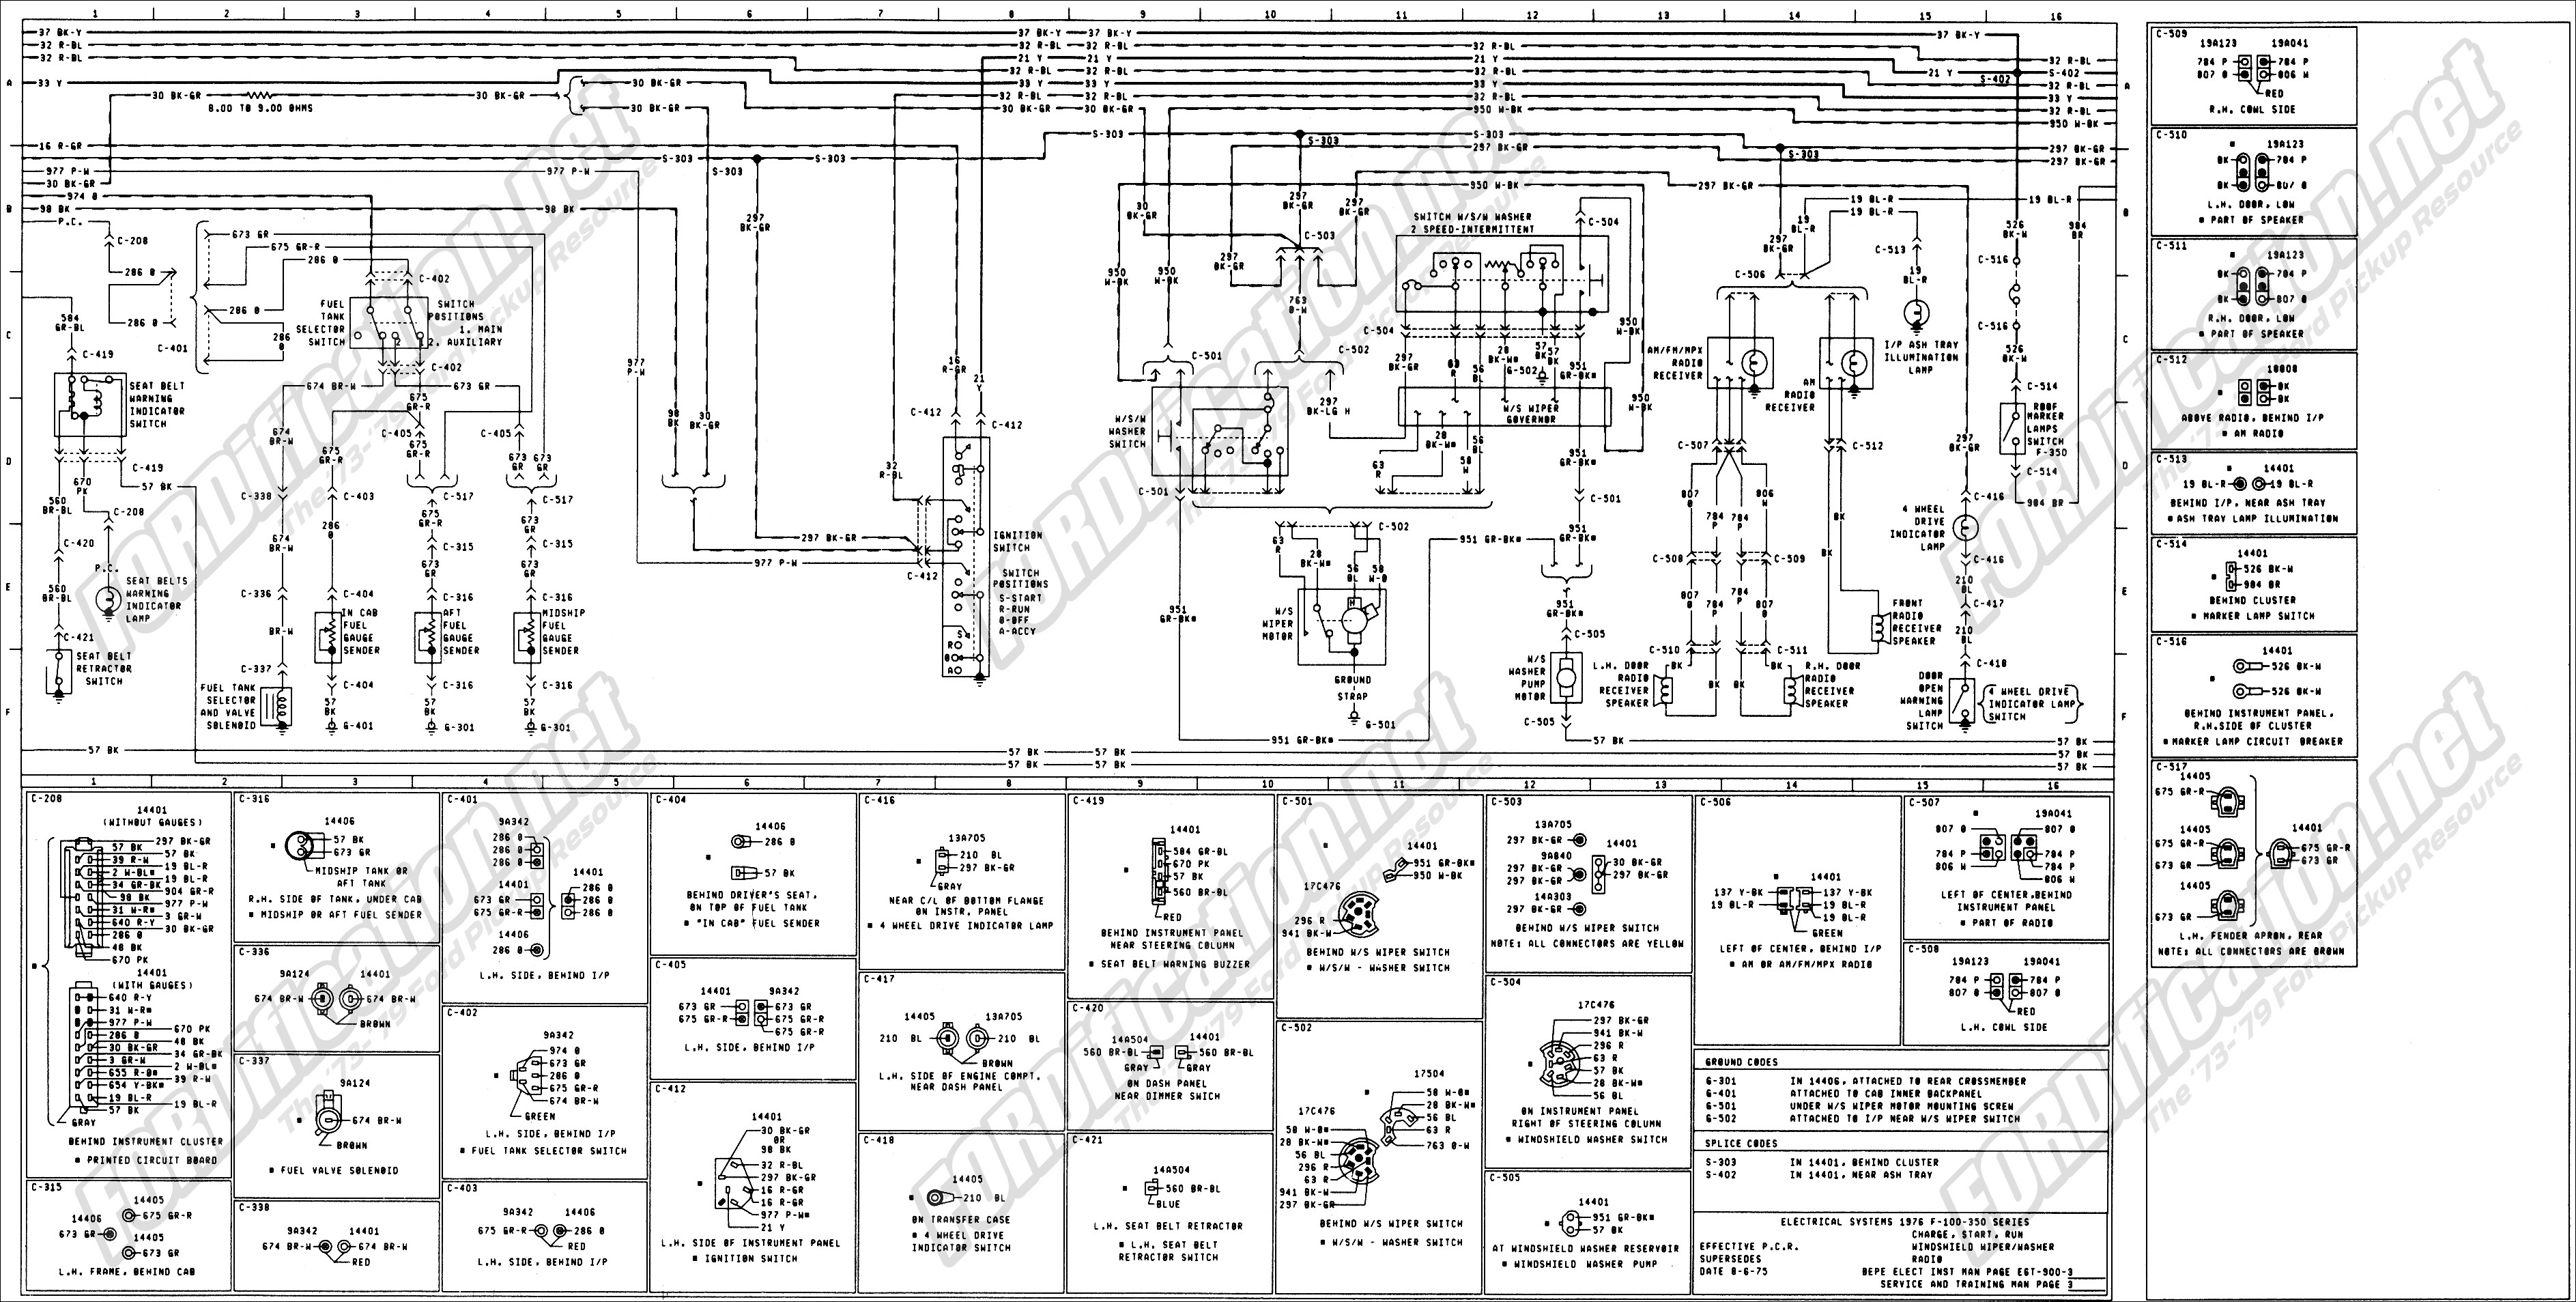 Ford Truck Fuse Box Diagram 1973 1979 ford Truck Wiring Diagrams &  Schematics fordification Of Ford